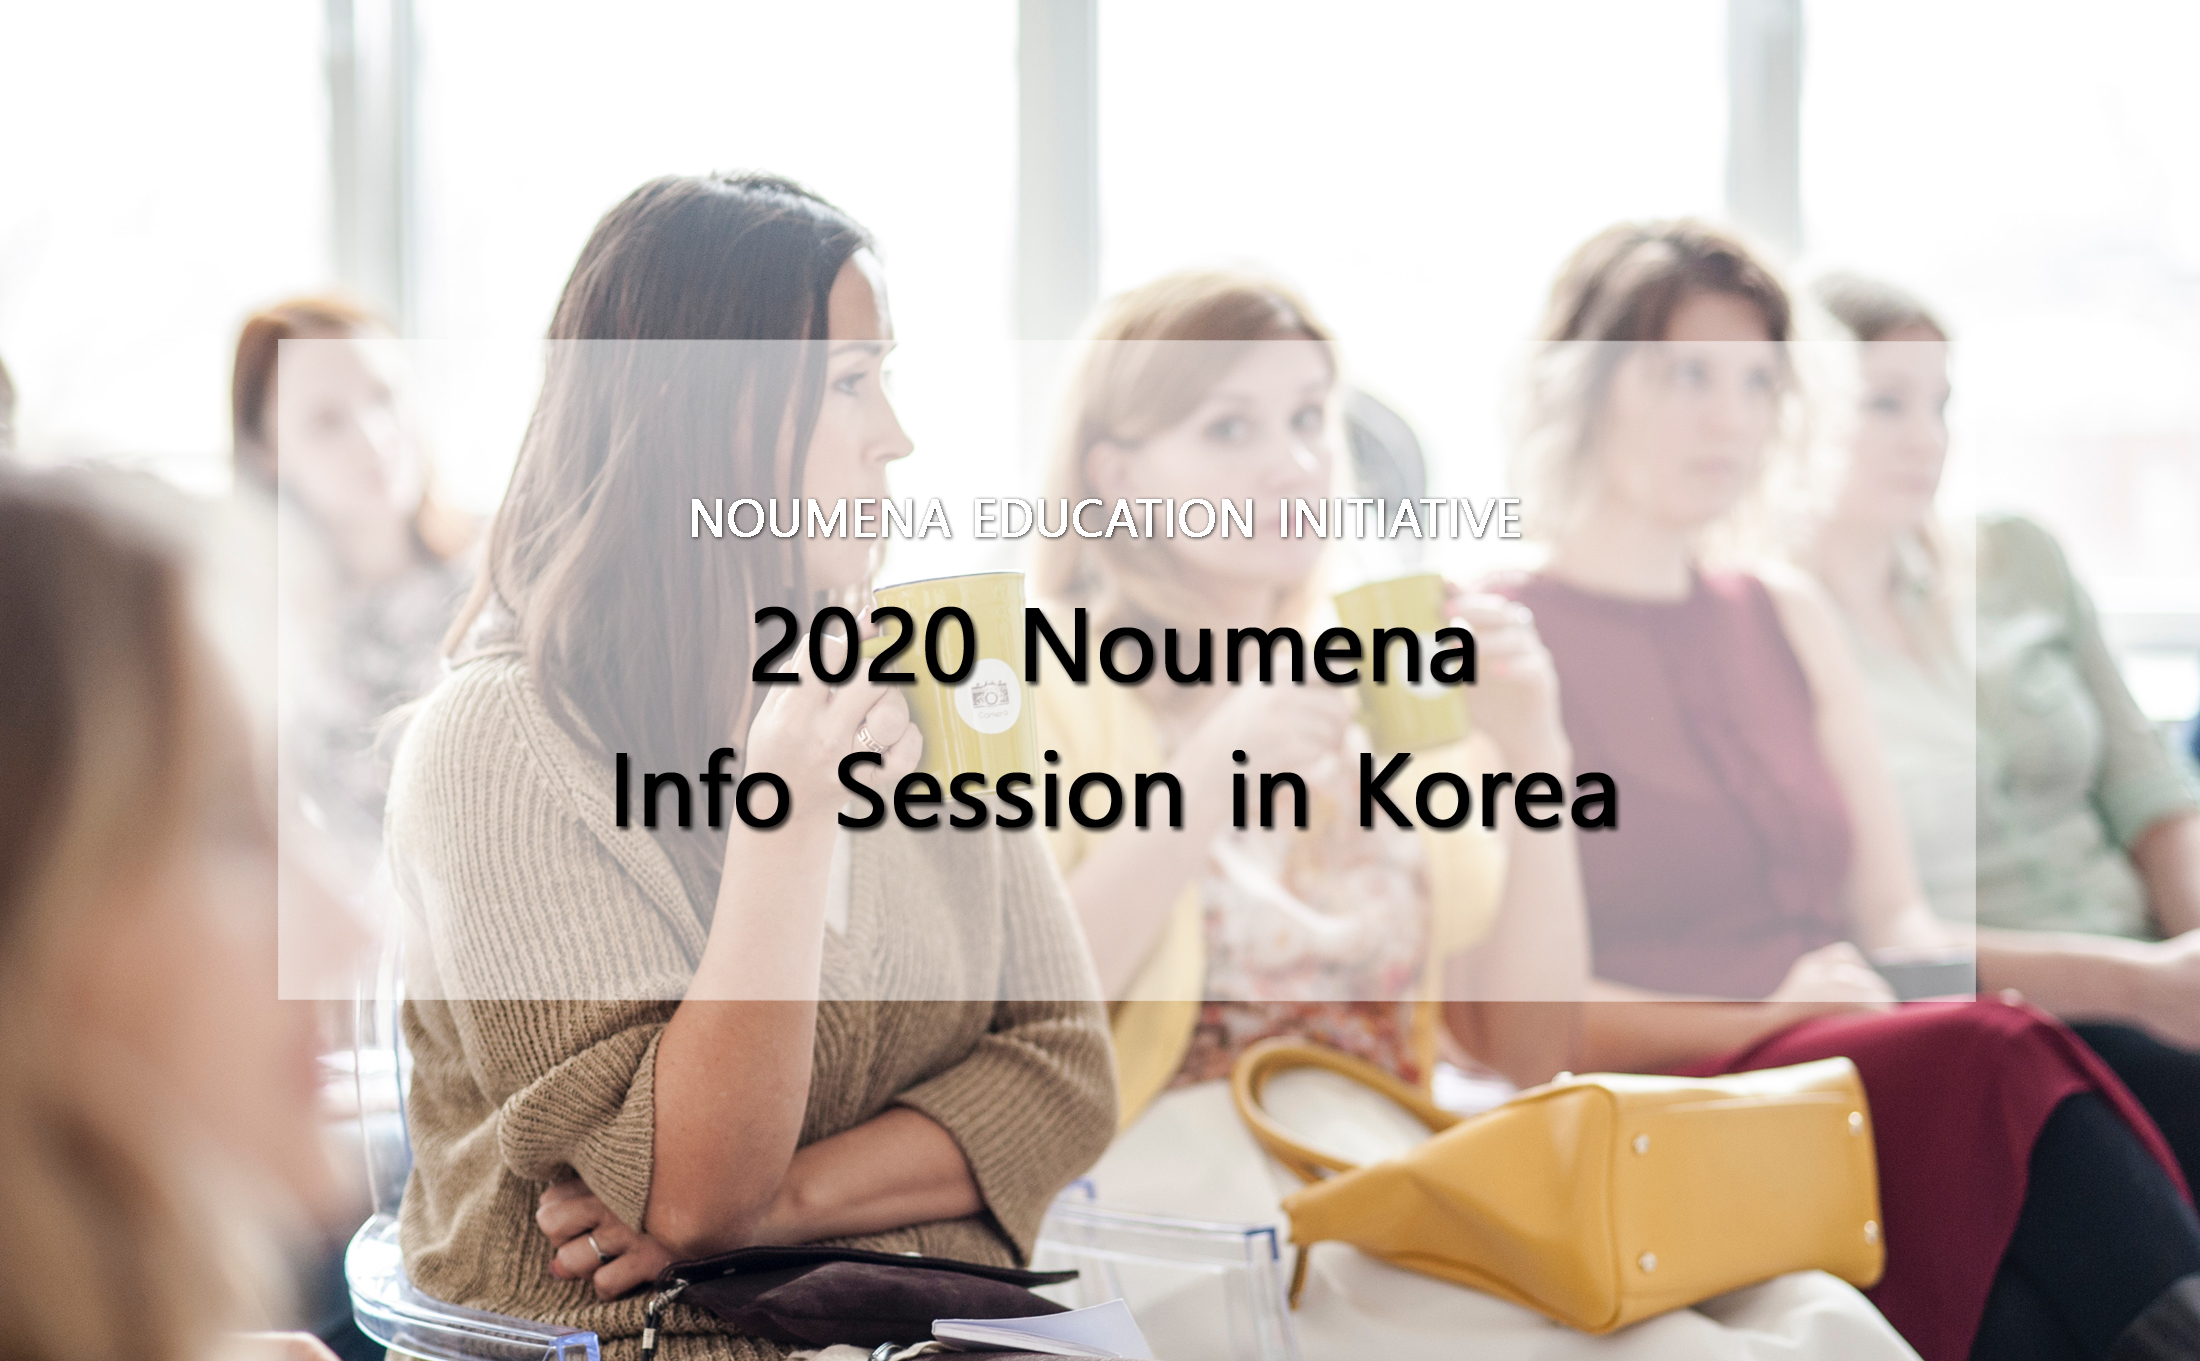 2020 Noumena Info Session in Korea